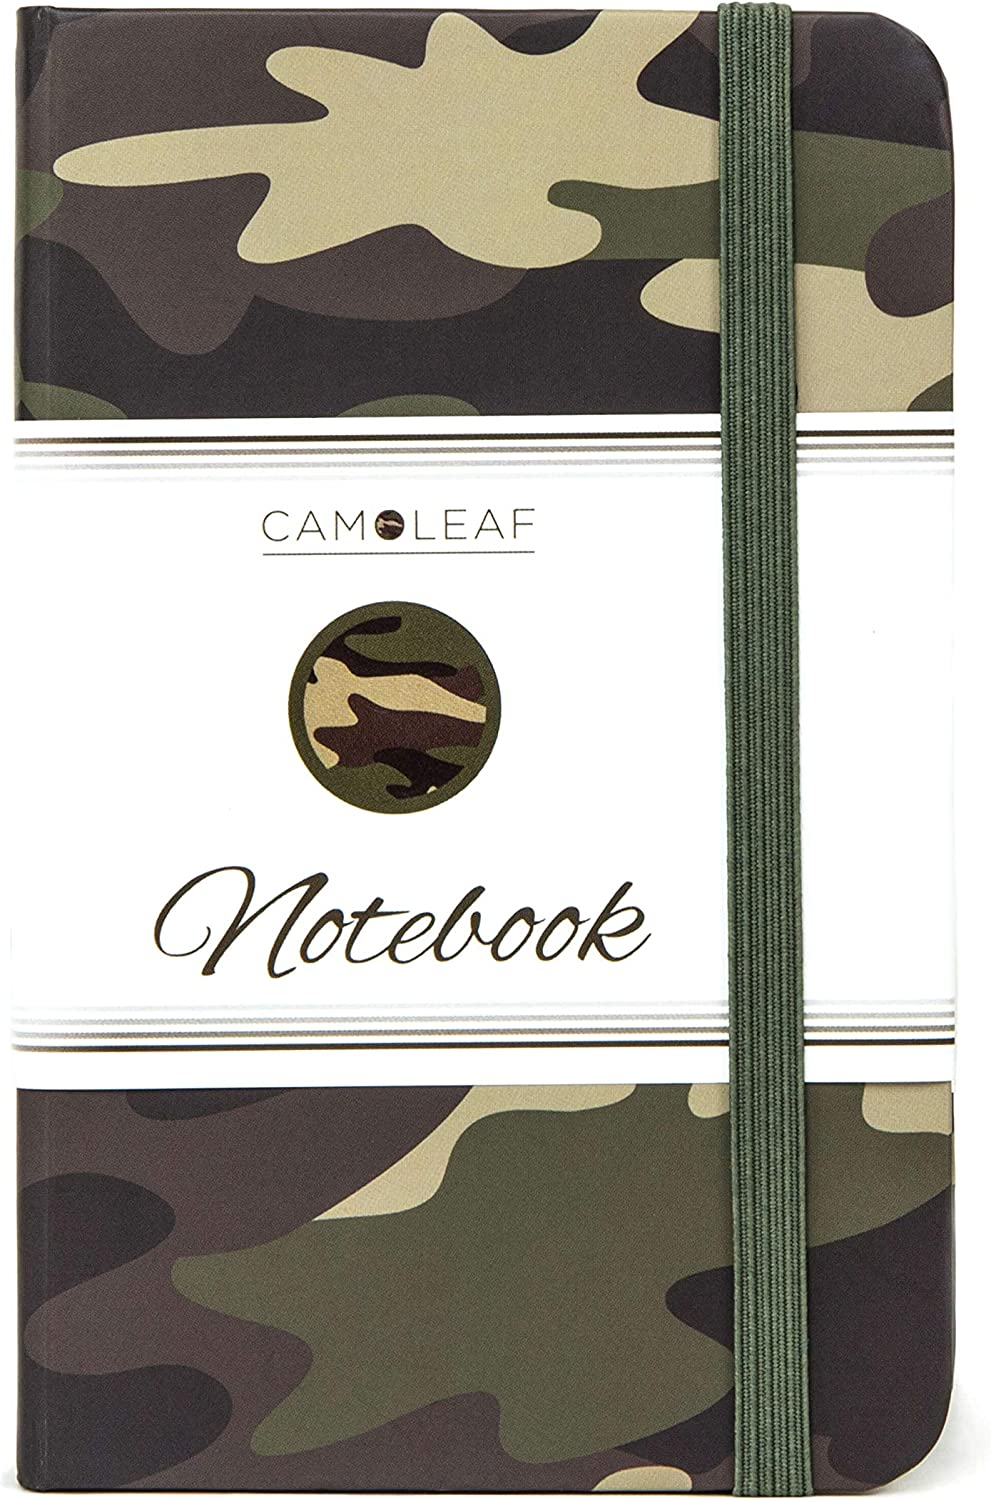 "Pocket Notebook | Journal 3.5 x 5.5"" - Small/Mini Size - Premium Printed Camouflage Cover Design - Thick 100gsm Acid-Free Ivory Paper - Lightly Ruled - by CAMOLEAF (Camo)"